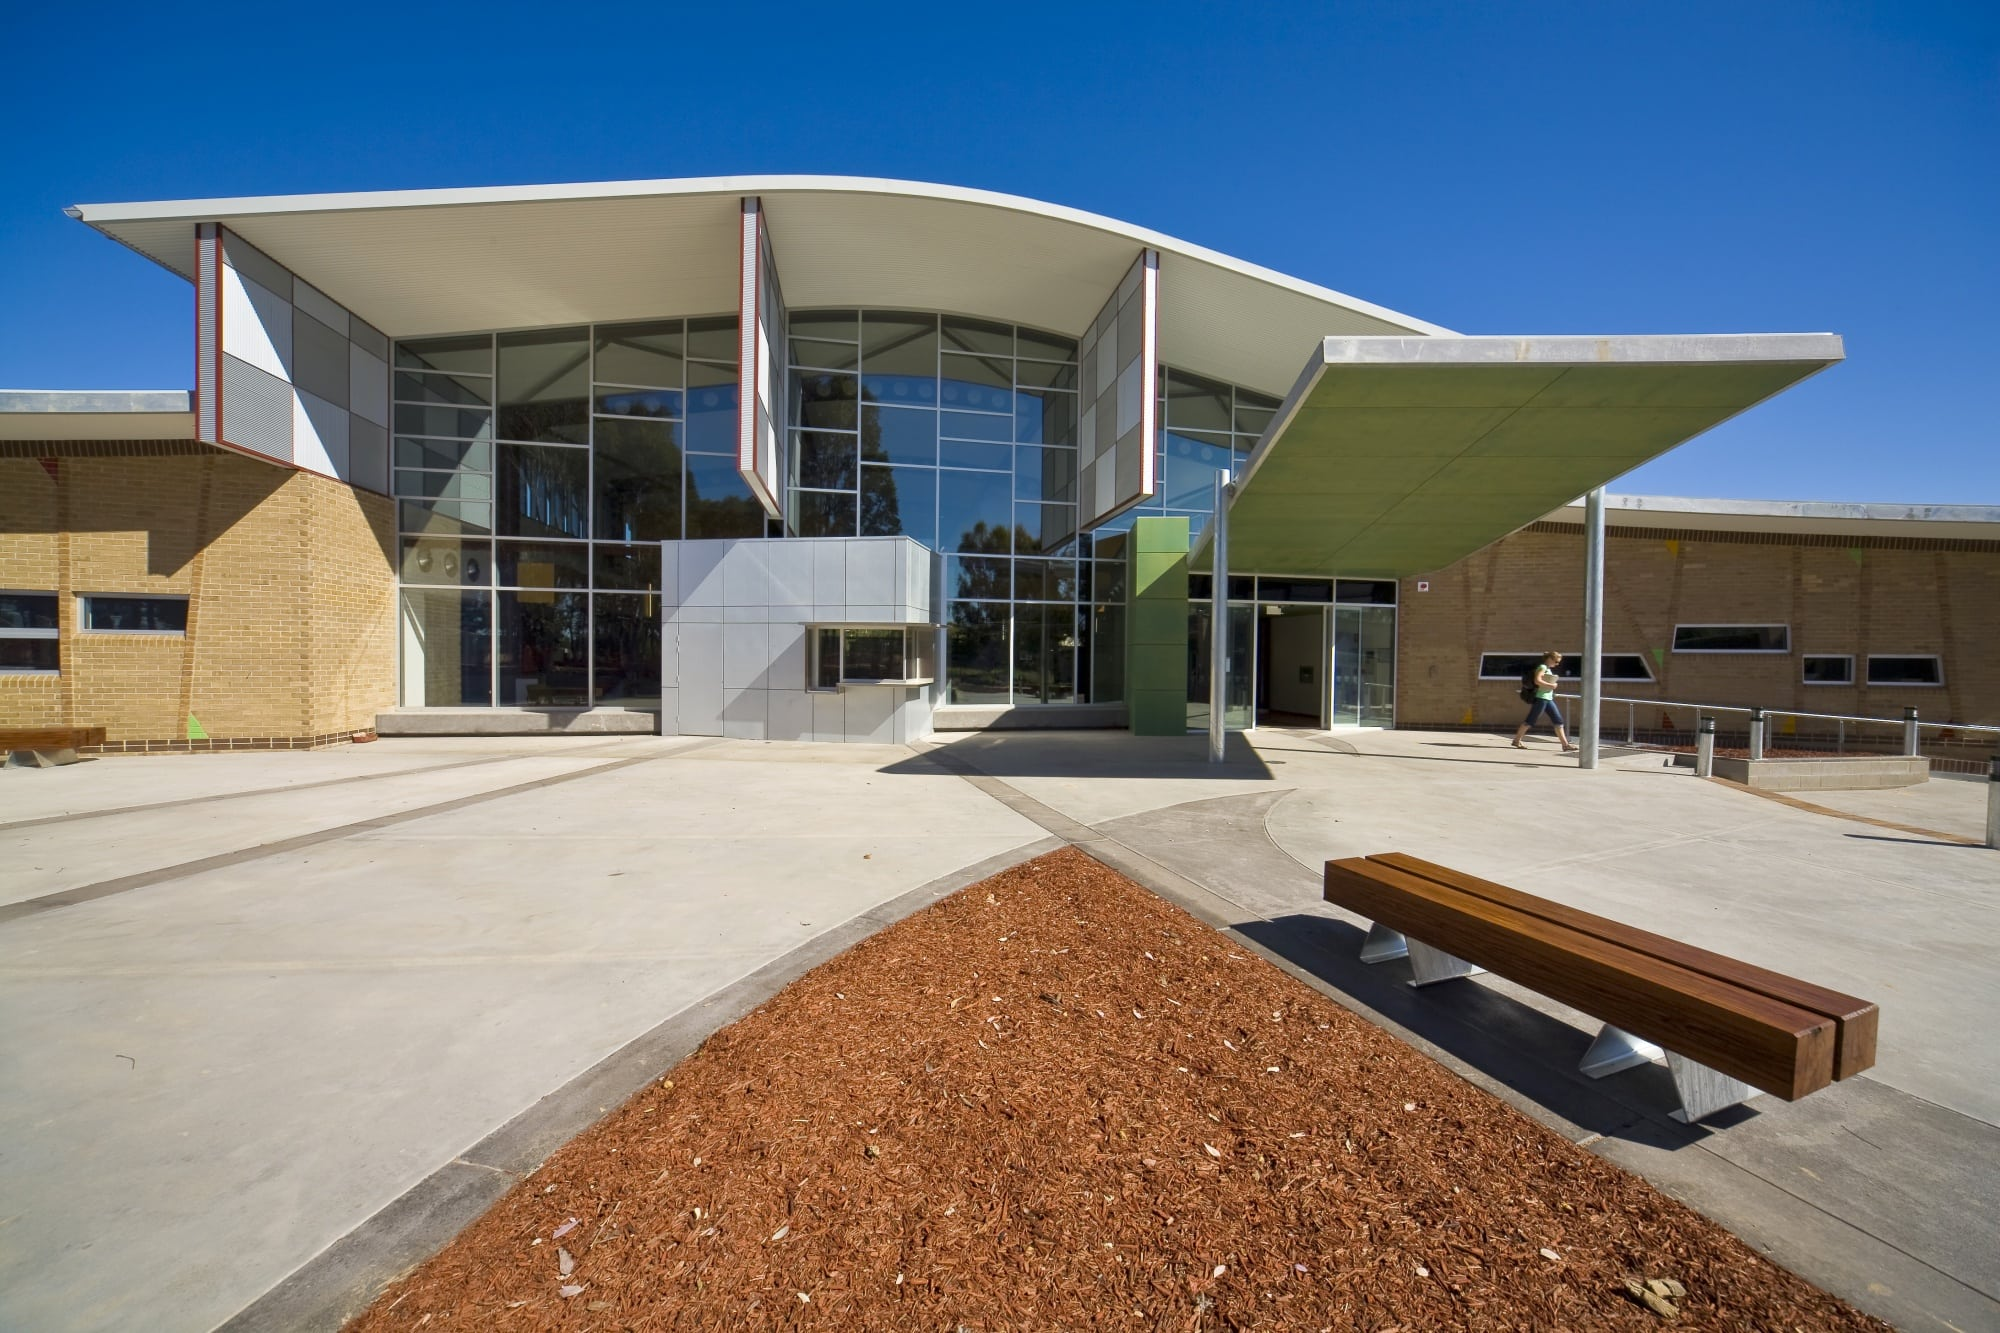 Charles Sturt University - Thurgoona Campus 'Learning Commons Building' - Front Facade